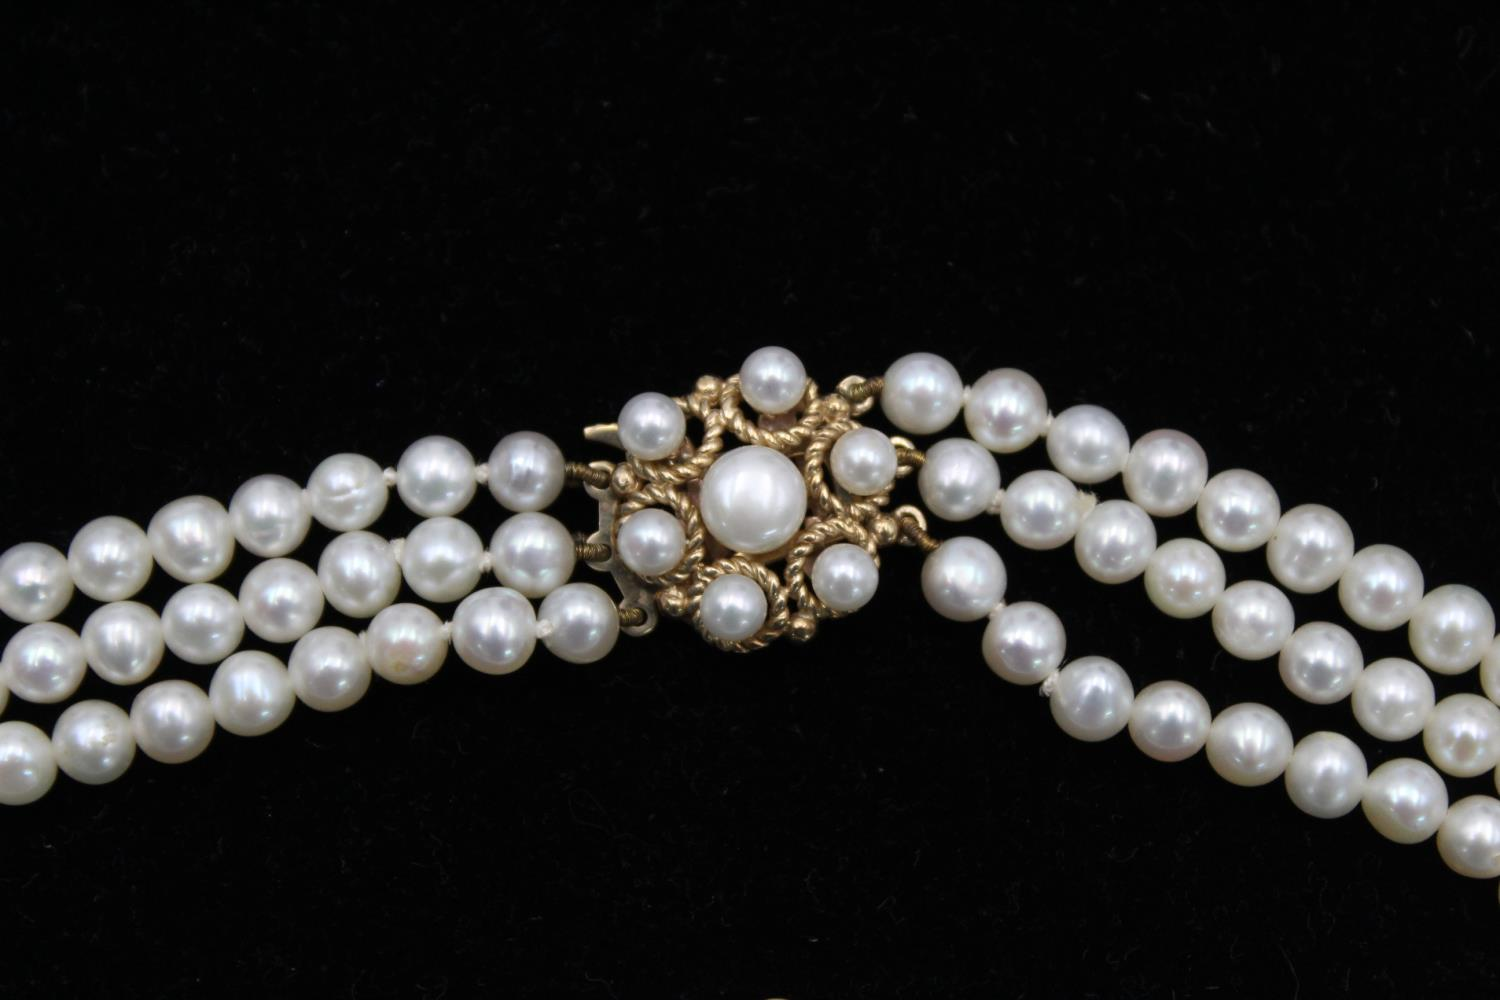 9ct Gold clasp pearl multi strand choker necklace 40.2g - Image 3 of 5